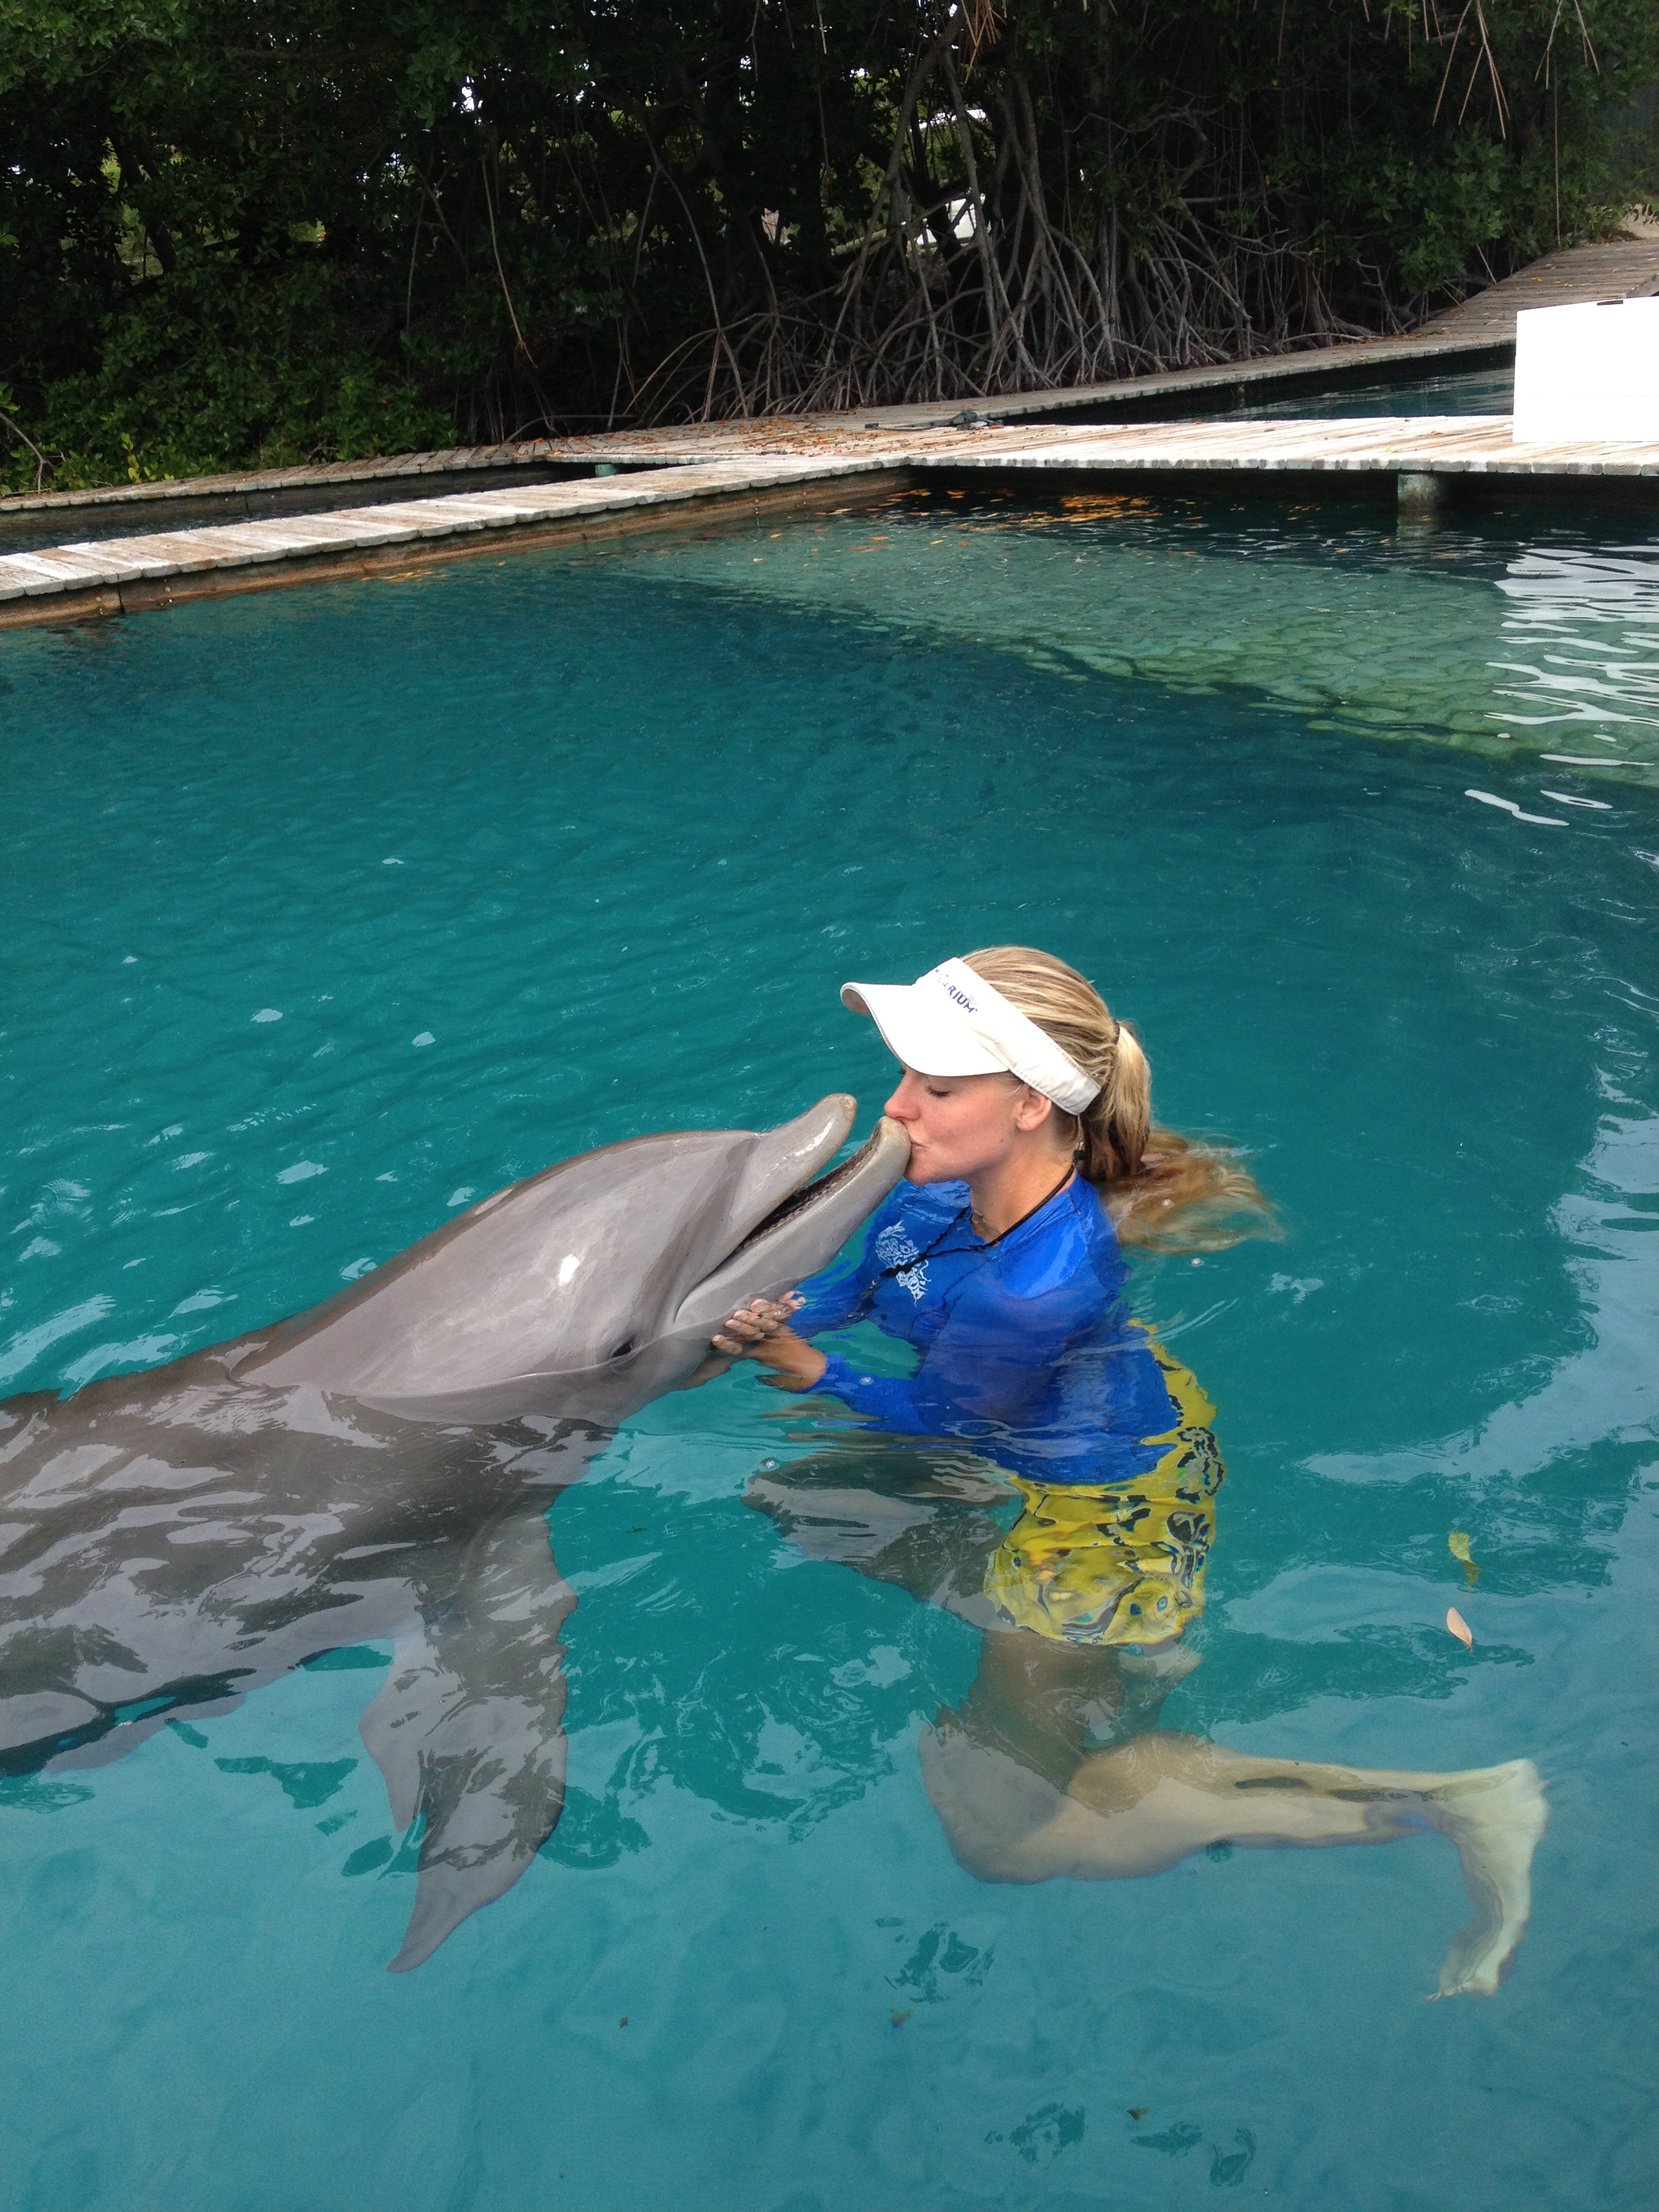 Where are there good collages for Marine Mammal trainers? In Florida Miami?